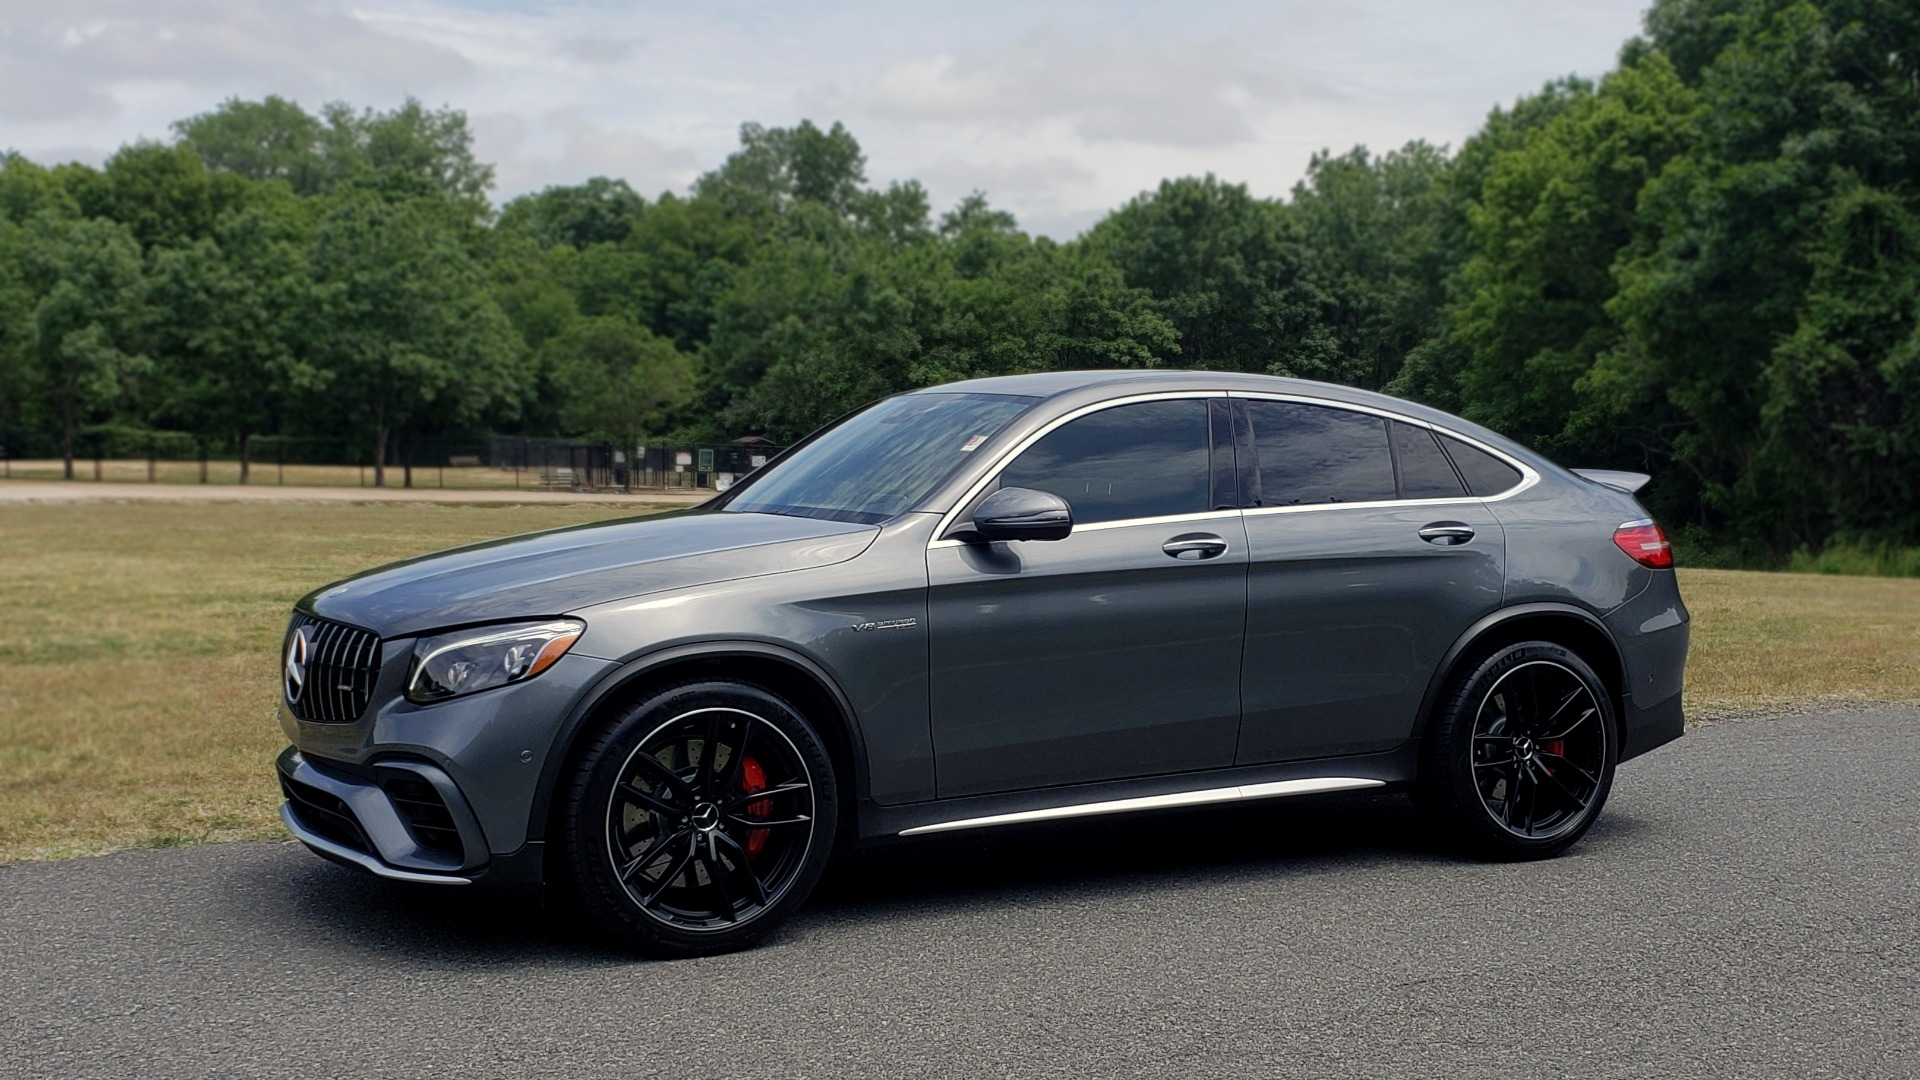 Used 2019 Mercedes-Benz GLC AMG 63 S 4MATIC COUPE / NAV / TRACK PACE APP / AMG PERF EXH / MULTIMEDIA for sale Sold at Formula Imports in Charlotte NC 28227 2